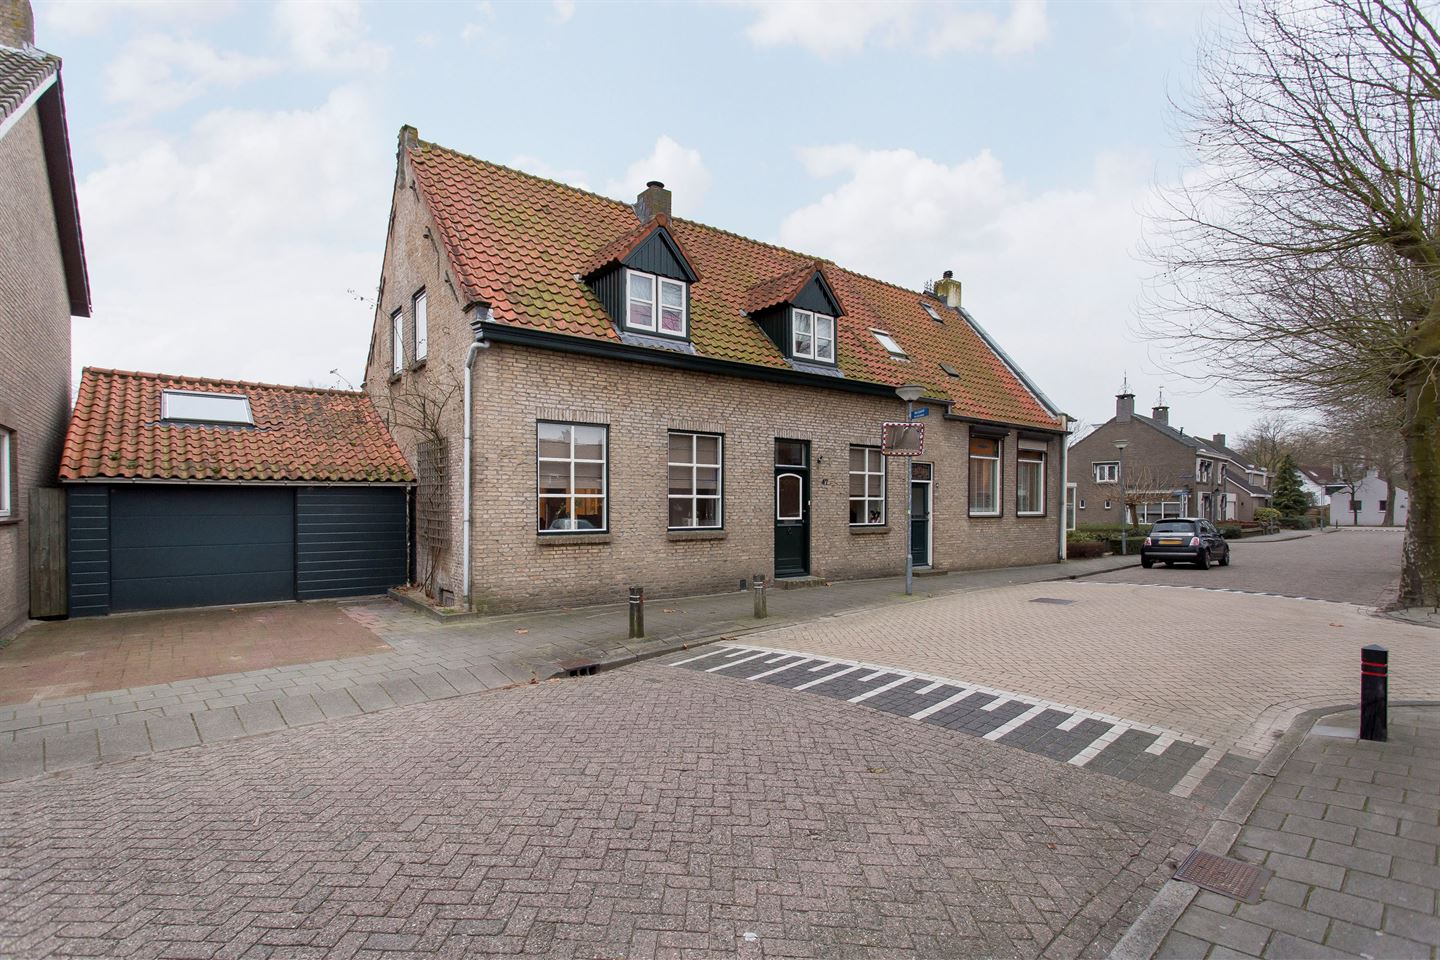 View photo 1 of Markstraat 47